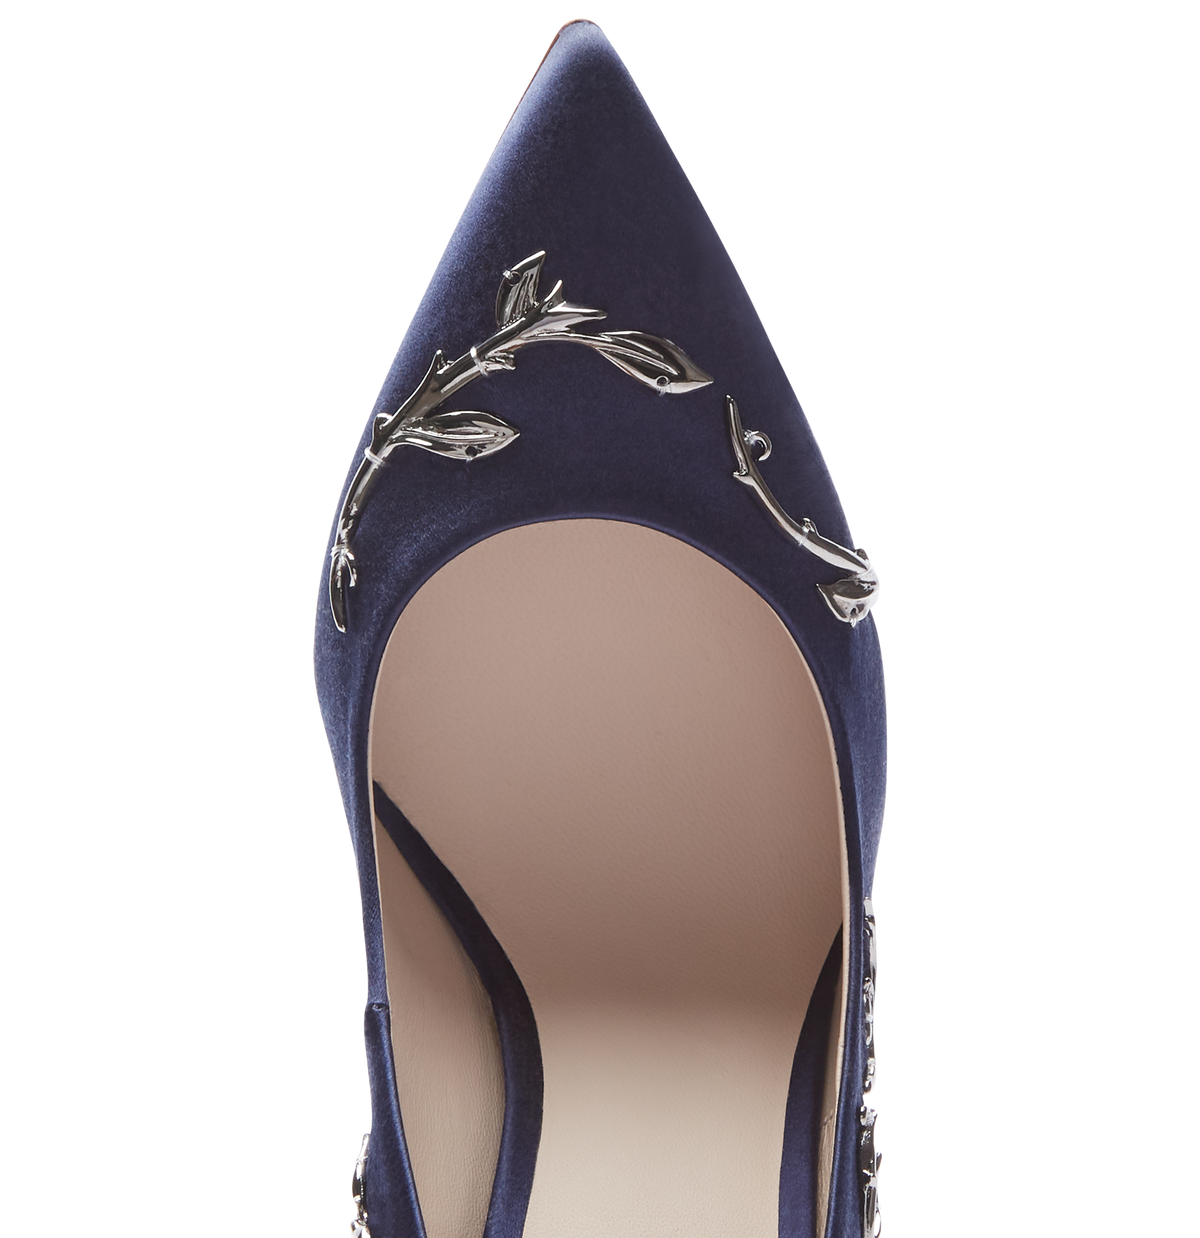 Midnight Blue Satin Eden Heels with Gunmetal Leaves